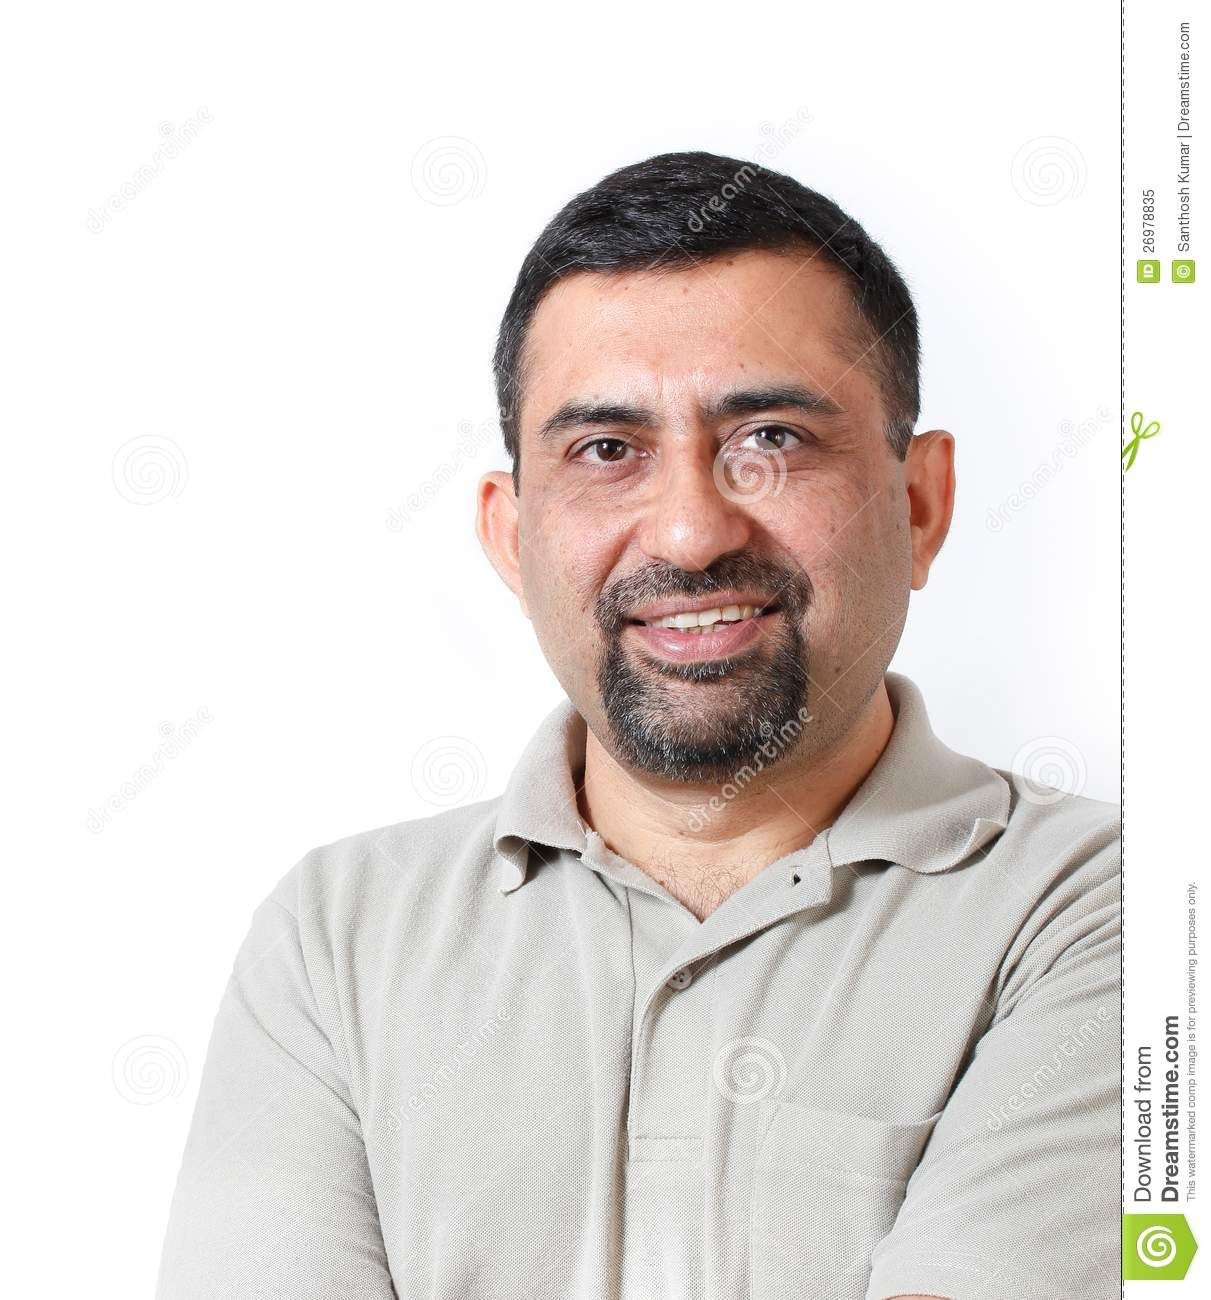 Smart & Smiling Middle Aged Indian Business Man Royalty Free Stock